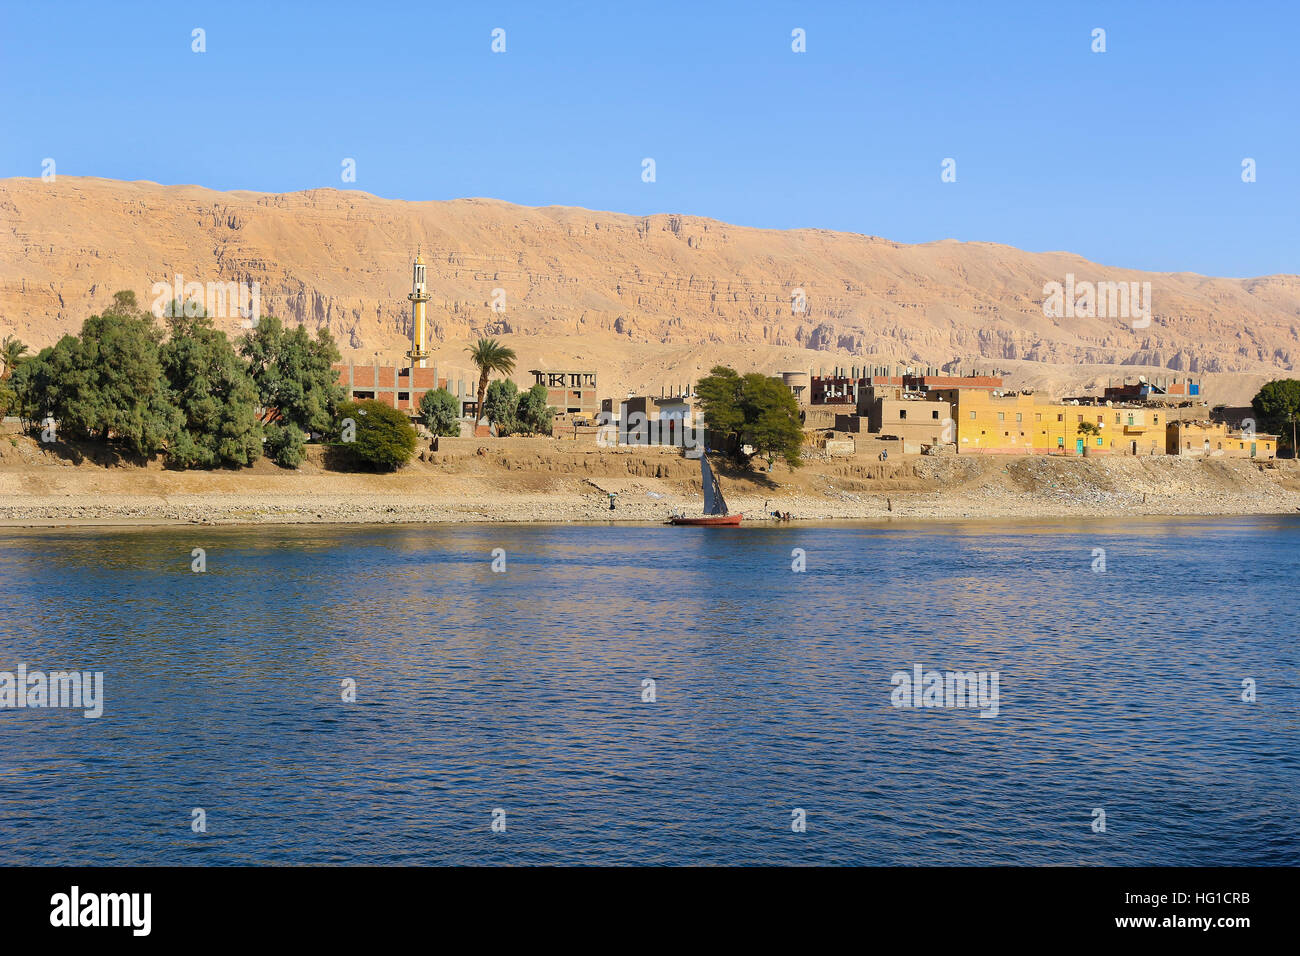 Village along the shore of the Nile